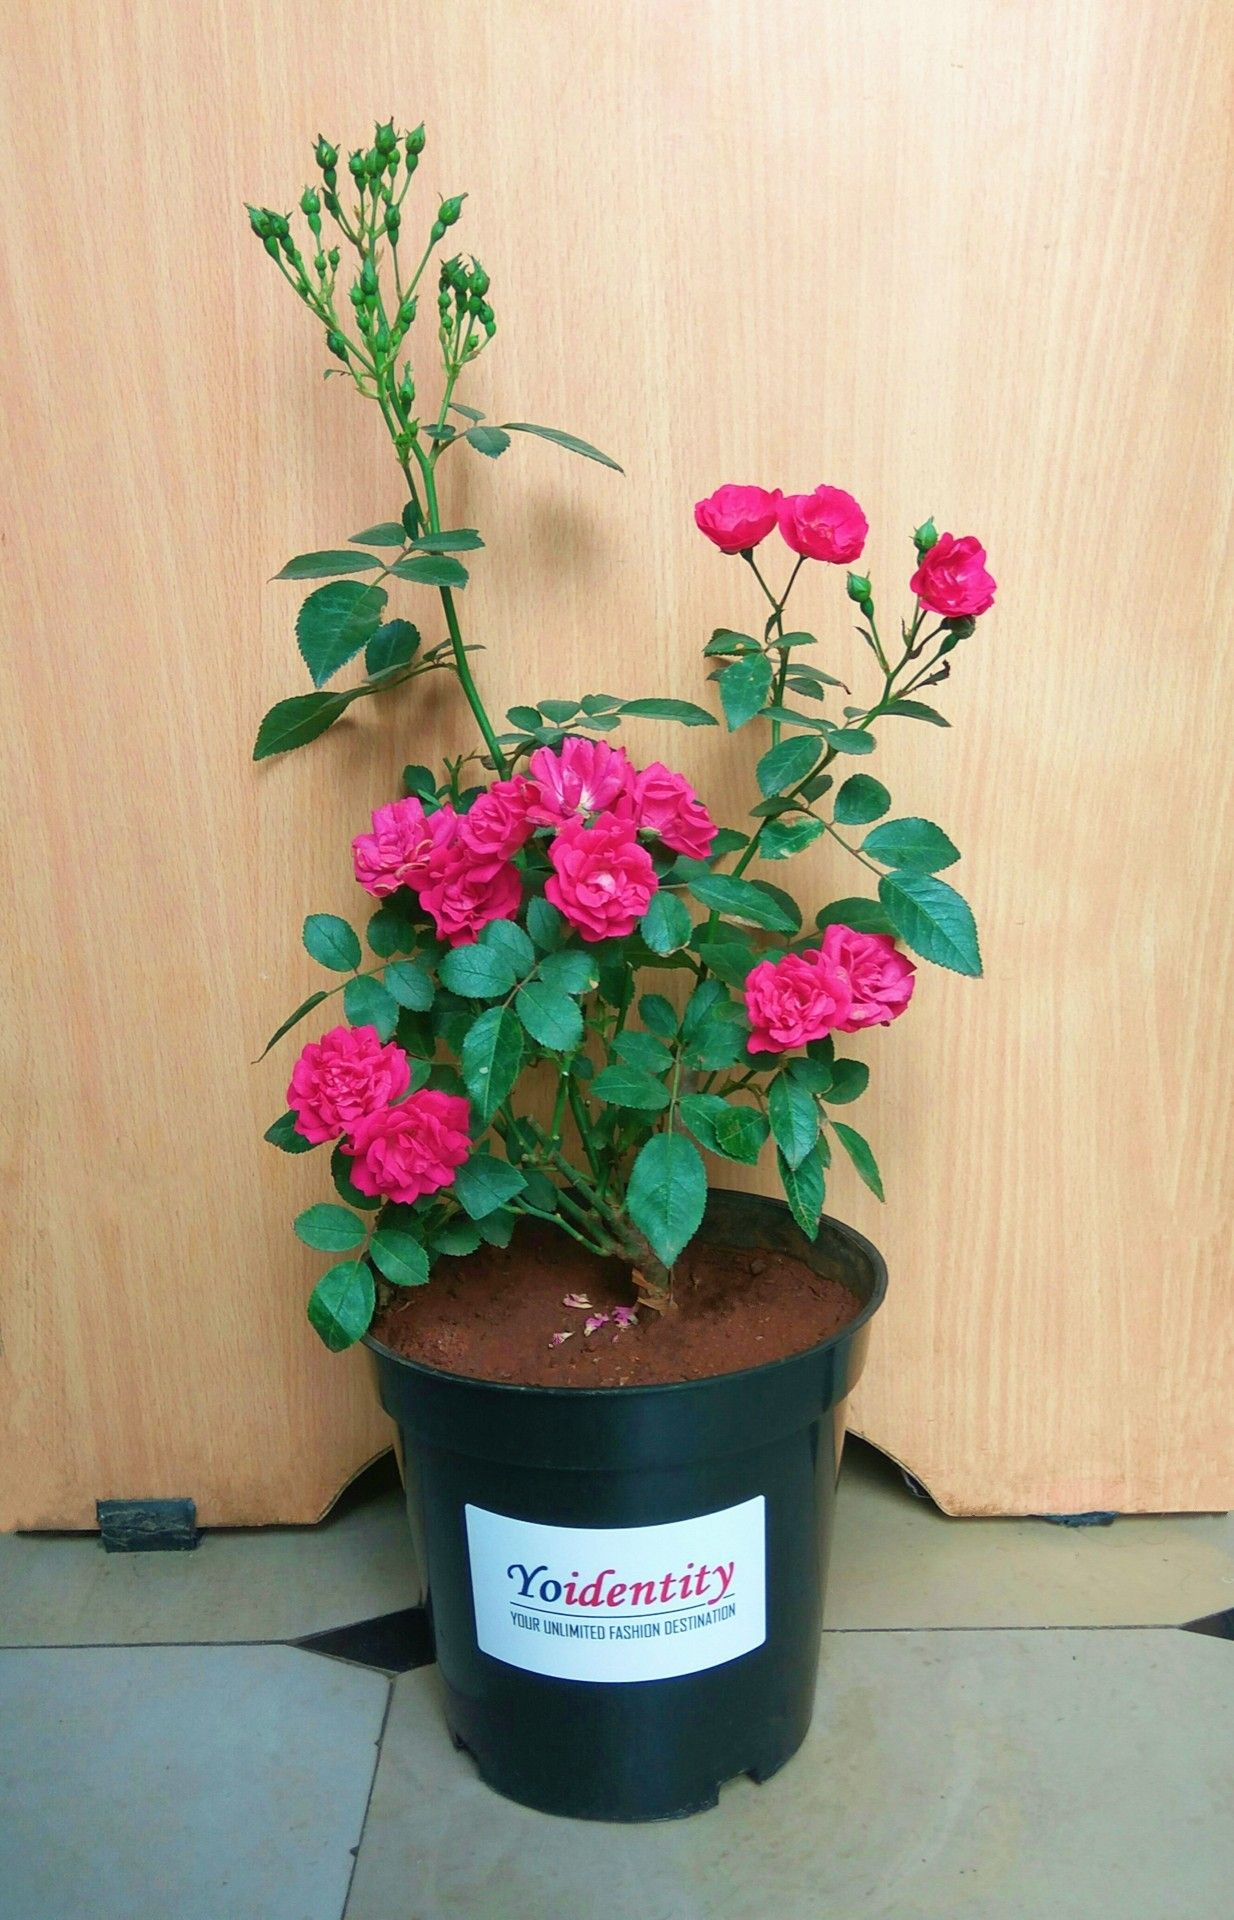 Yoidentity Pink Miniature Rose Button Rose Plant Planting Roses Perennial Flowering Plants Online Plant Nursery